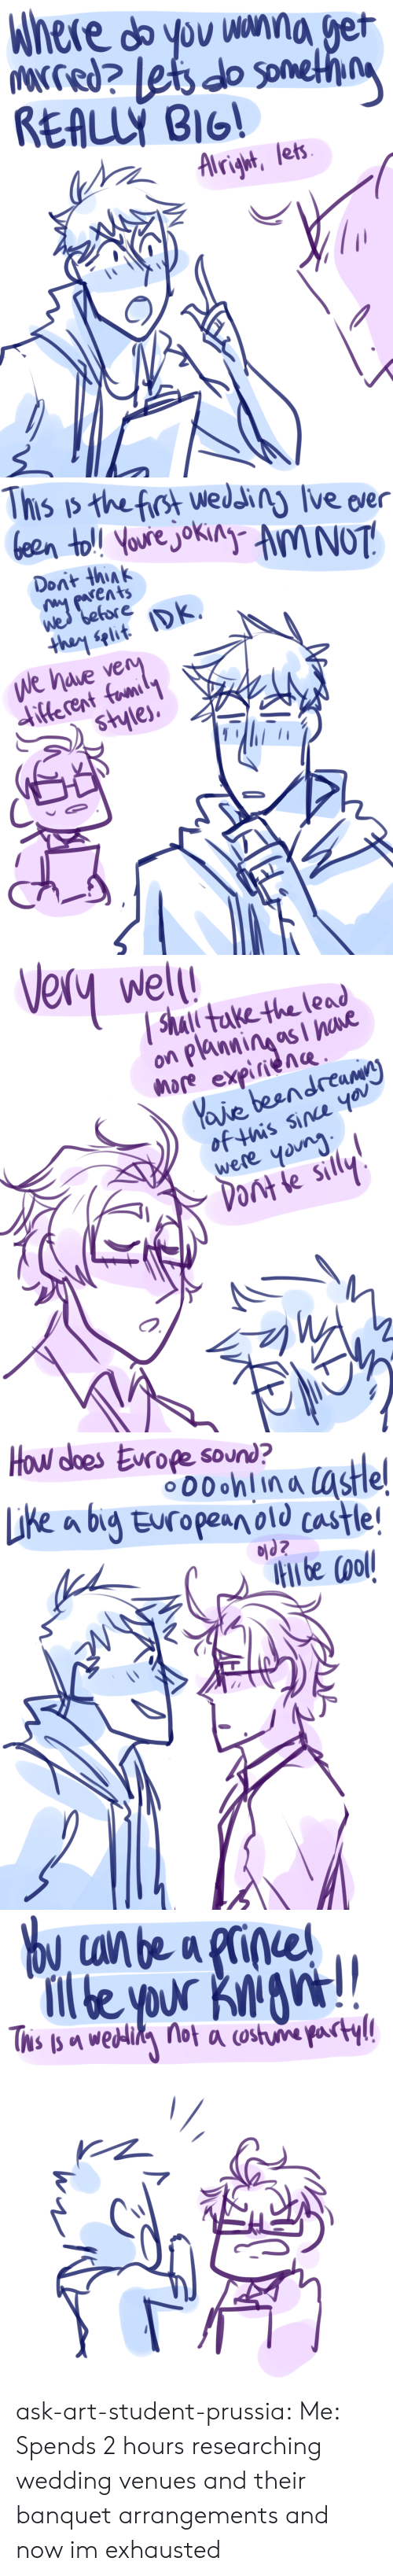 Target, Tumblr, and Blog: Dont thiAk  wes belore  We have ve   Wel  2 0  hore expirnene  of this sine yov  were youn  ร์เ  Pont le sily   hou dhes Eiroep 0uhn a taste  Like a bg Europen old castle   we ask-art-student-prussia:  Me: Spends 2 hours researching wedding venues and their banquet arrangements and now im exhausted